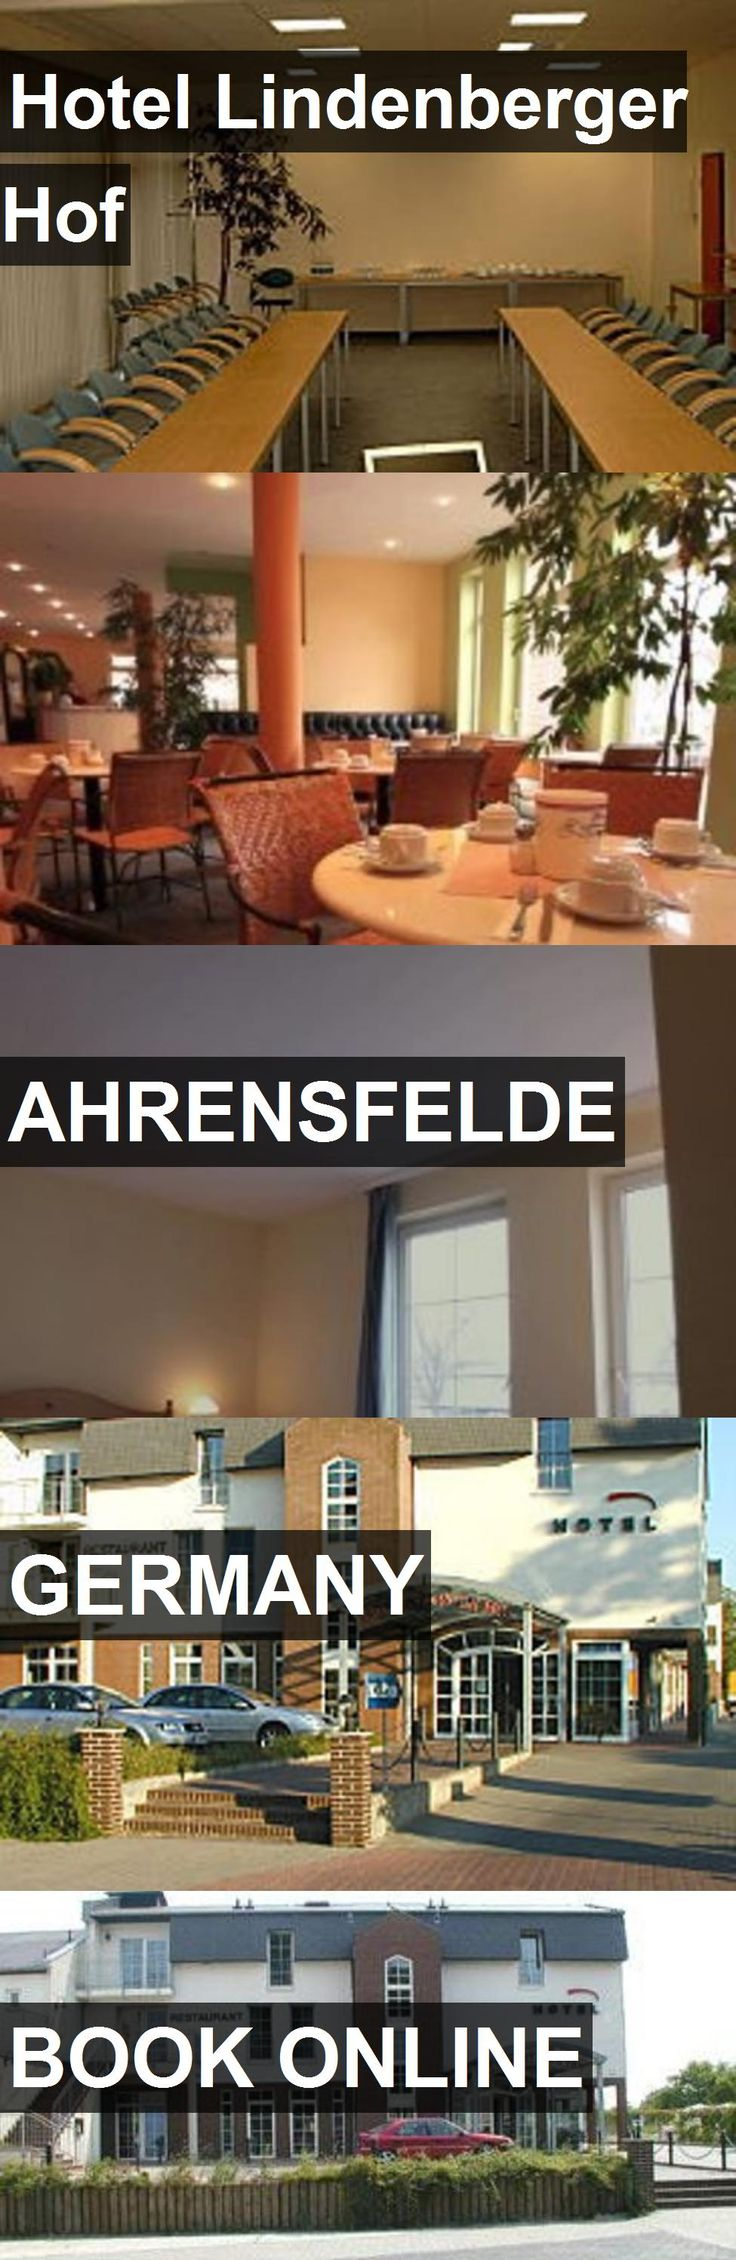 Hotel Hotel Lindenberger Hof in Ahrensfelde, Germany. For more information, photos, reviews and best prices please follow the link. #Germany #Ahrensfelde #HotelLindenbergerHof #hotel #travel #vacation